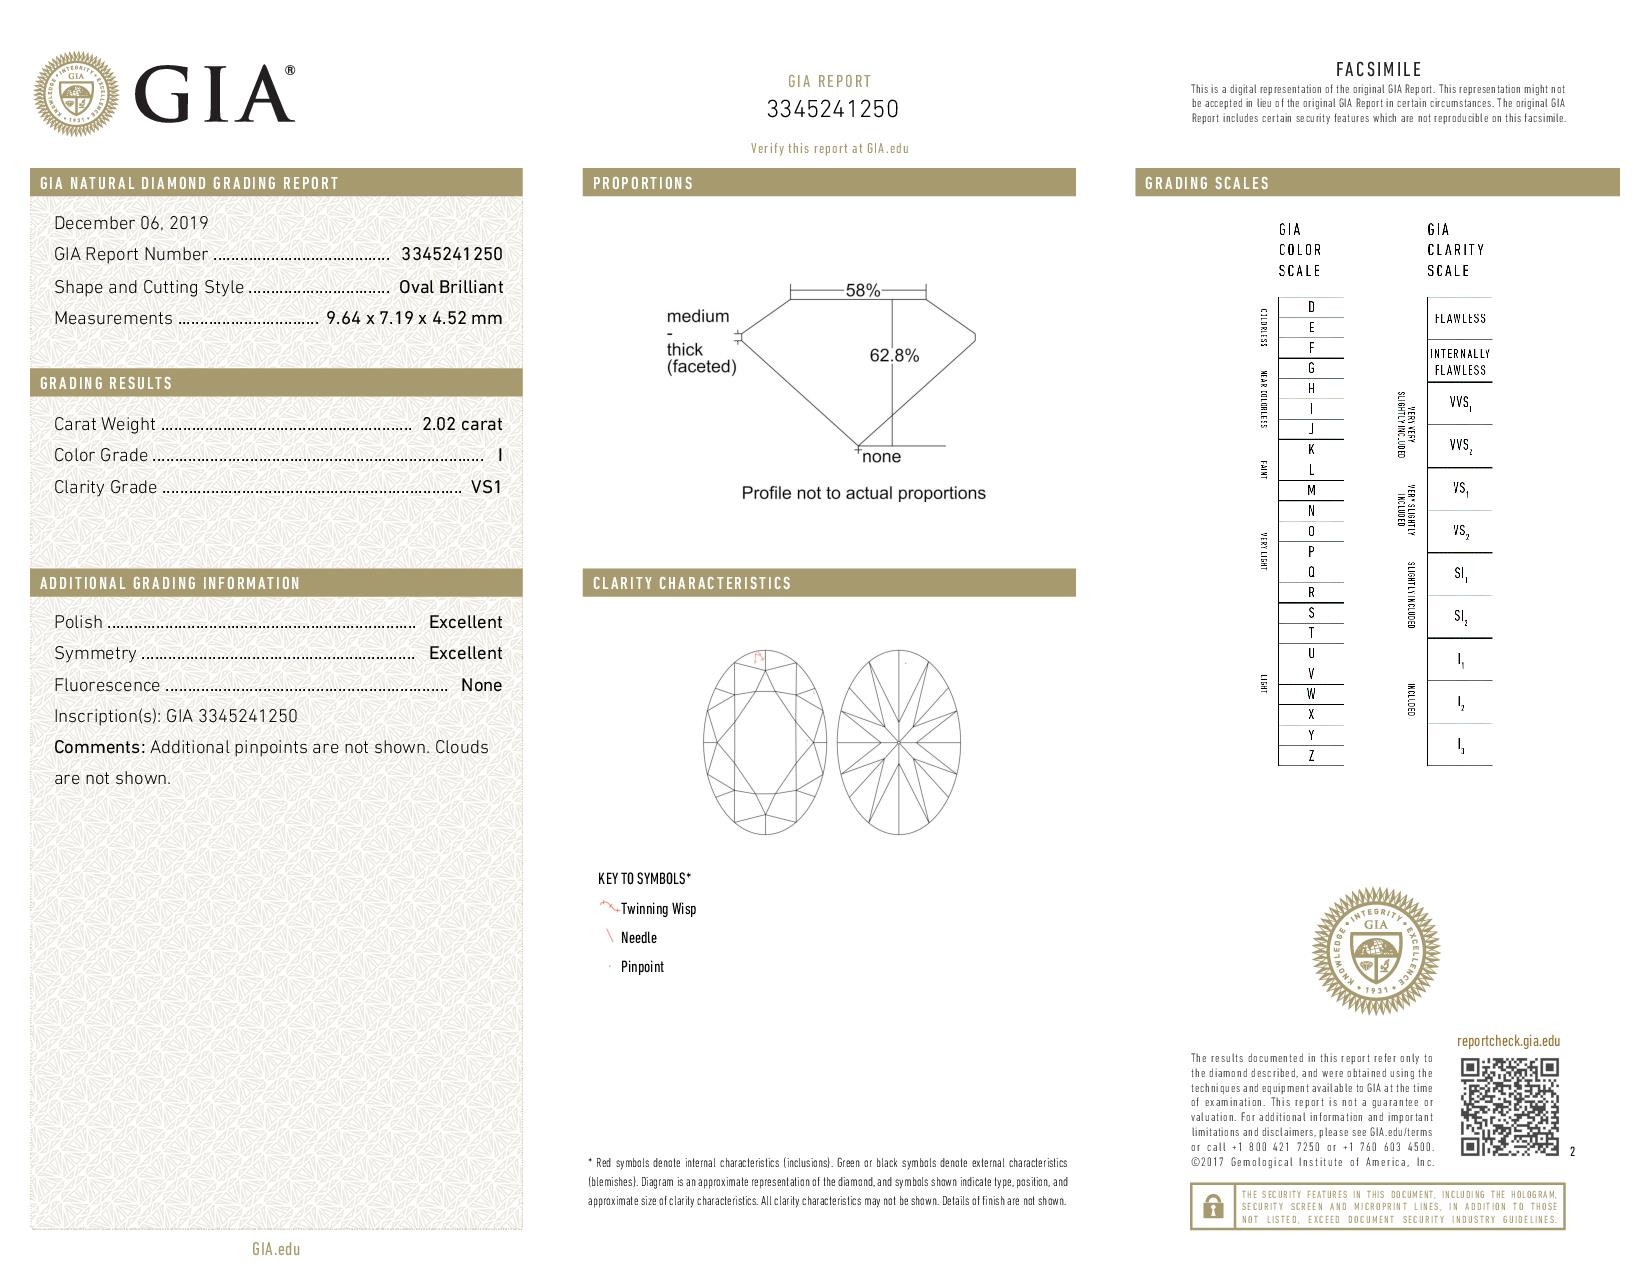 This is a 2.02 carat oval shape, I color, VS1 clarity natural diamond accompanied by a GIA grading report.